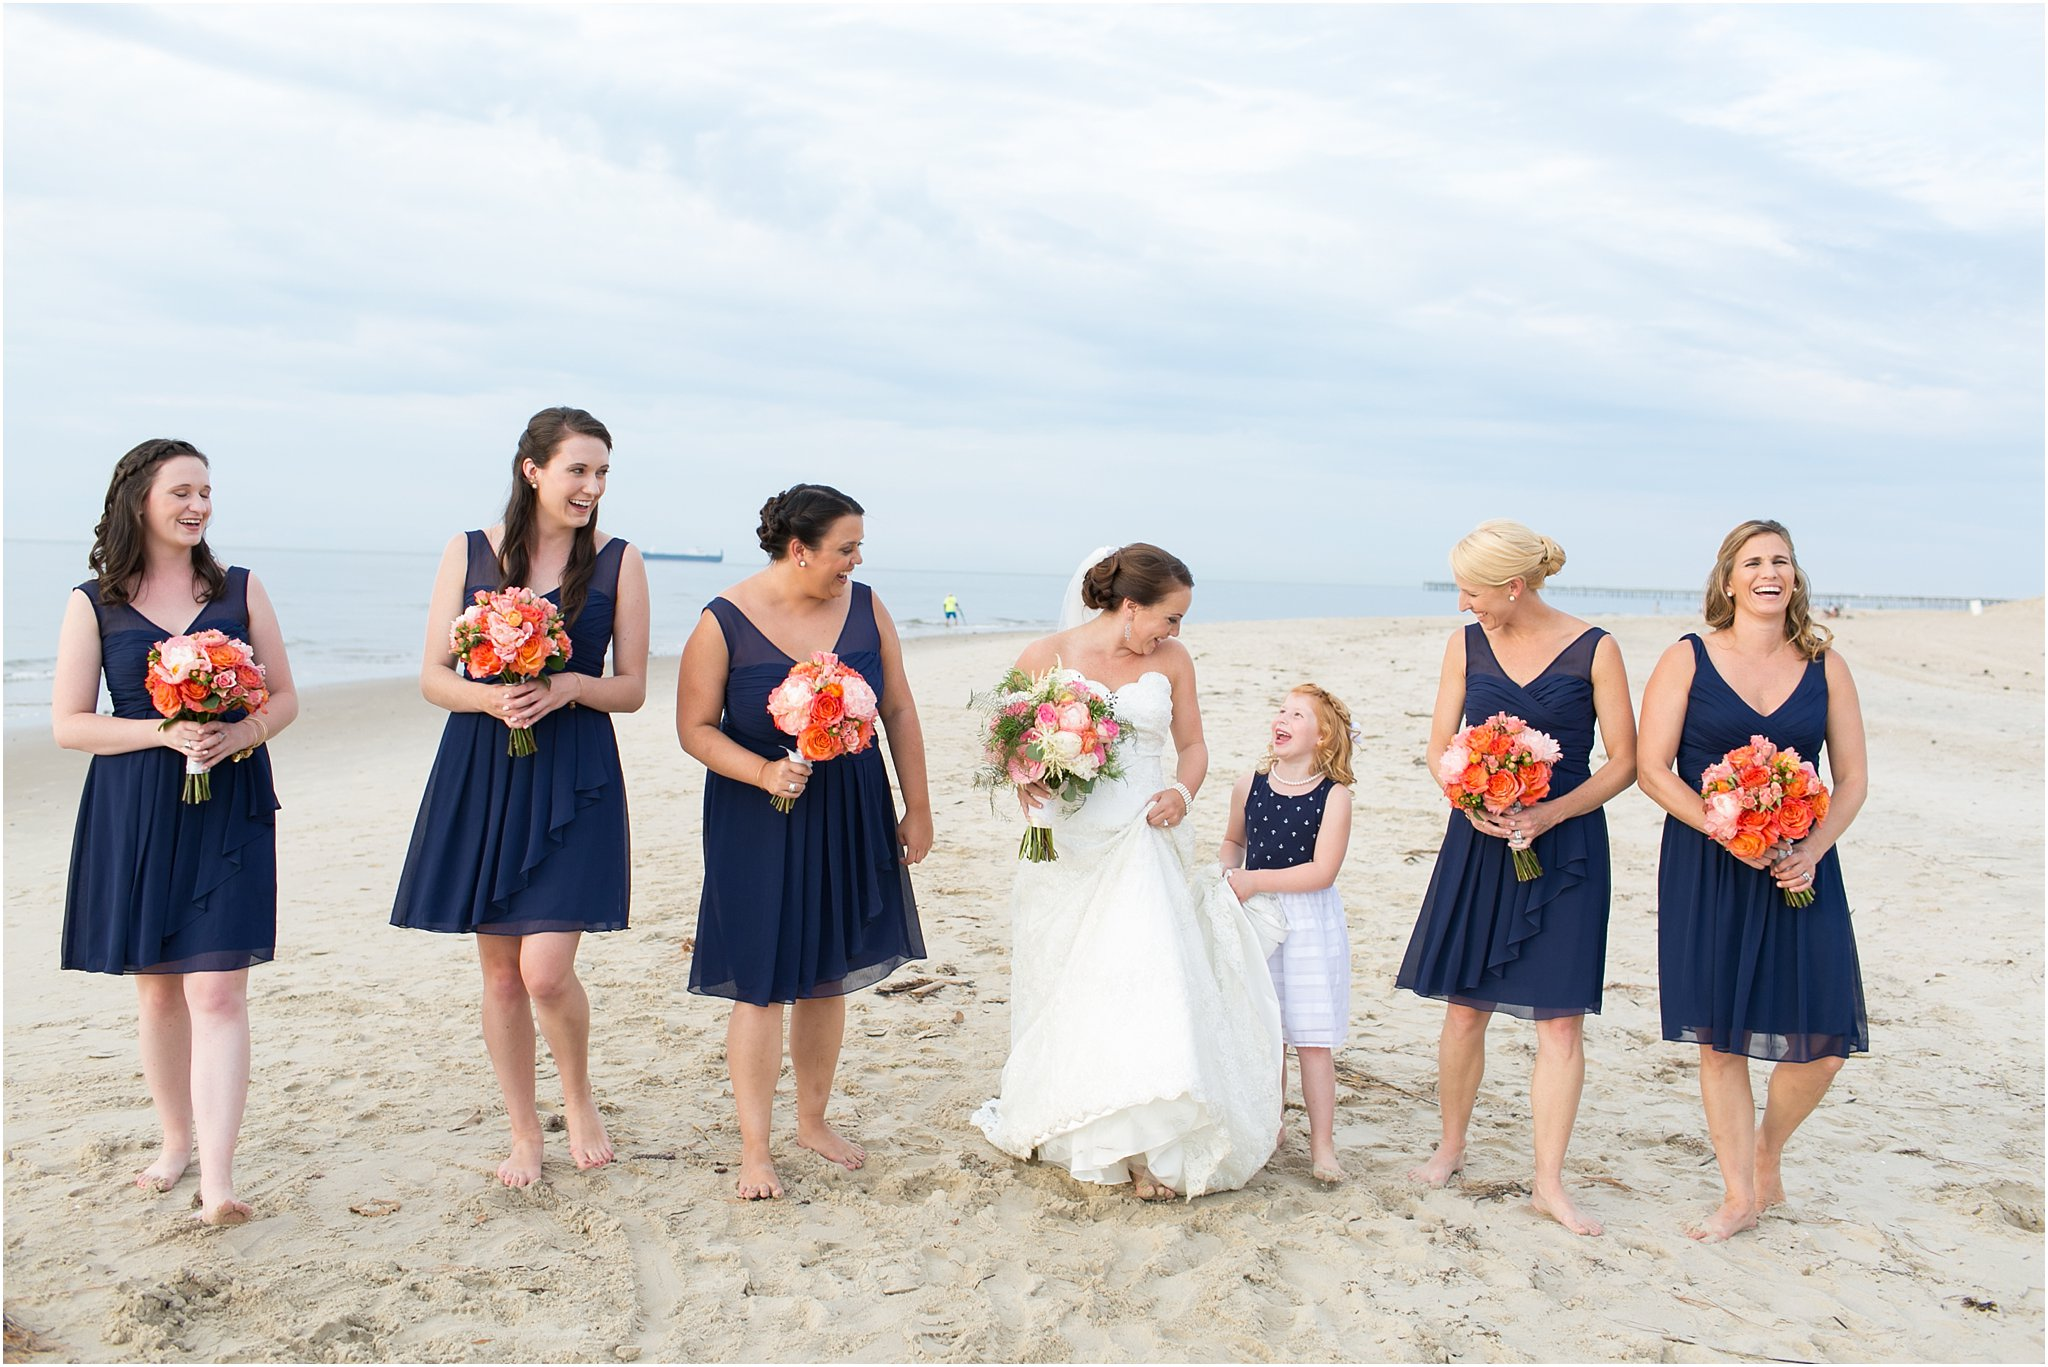 jessica_ryan_photography_wedding_photography_virginiabeach_virginia_candid_authentic_wedding_portraits_marina_shores_yacht_club_chesapeake_bay_1869